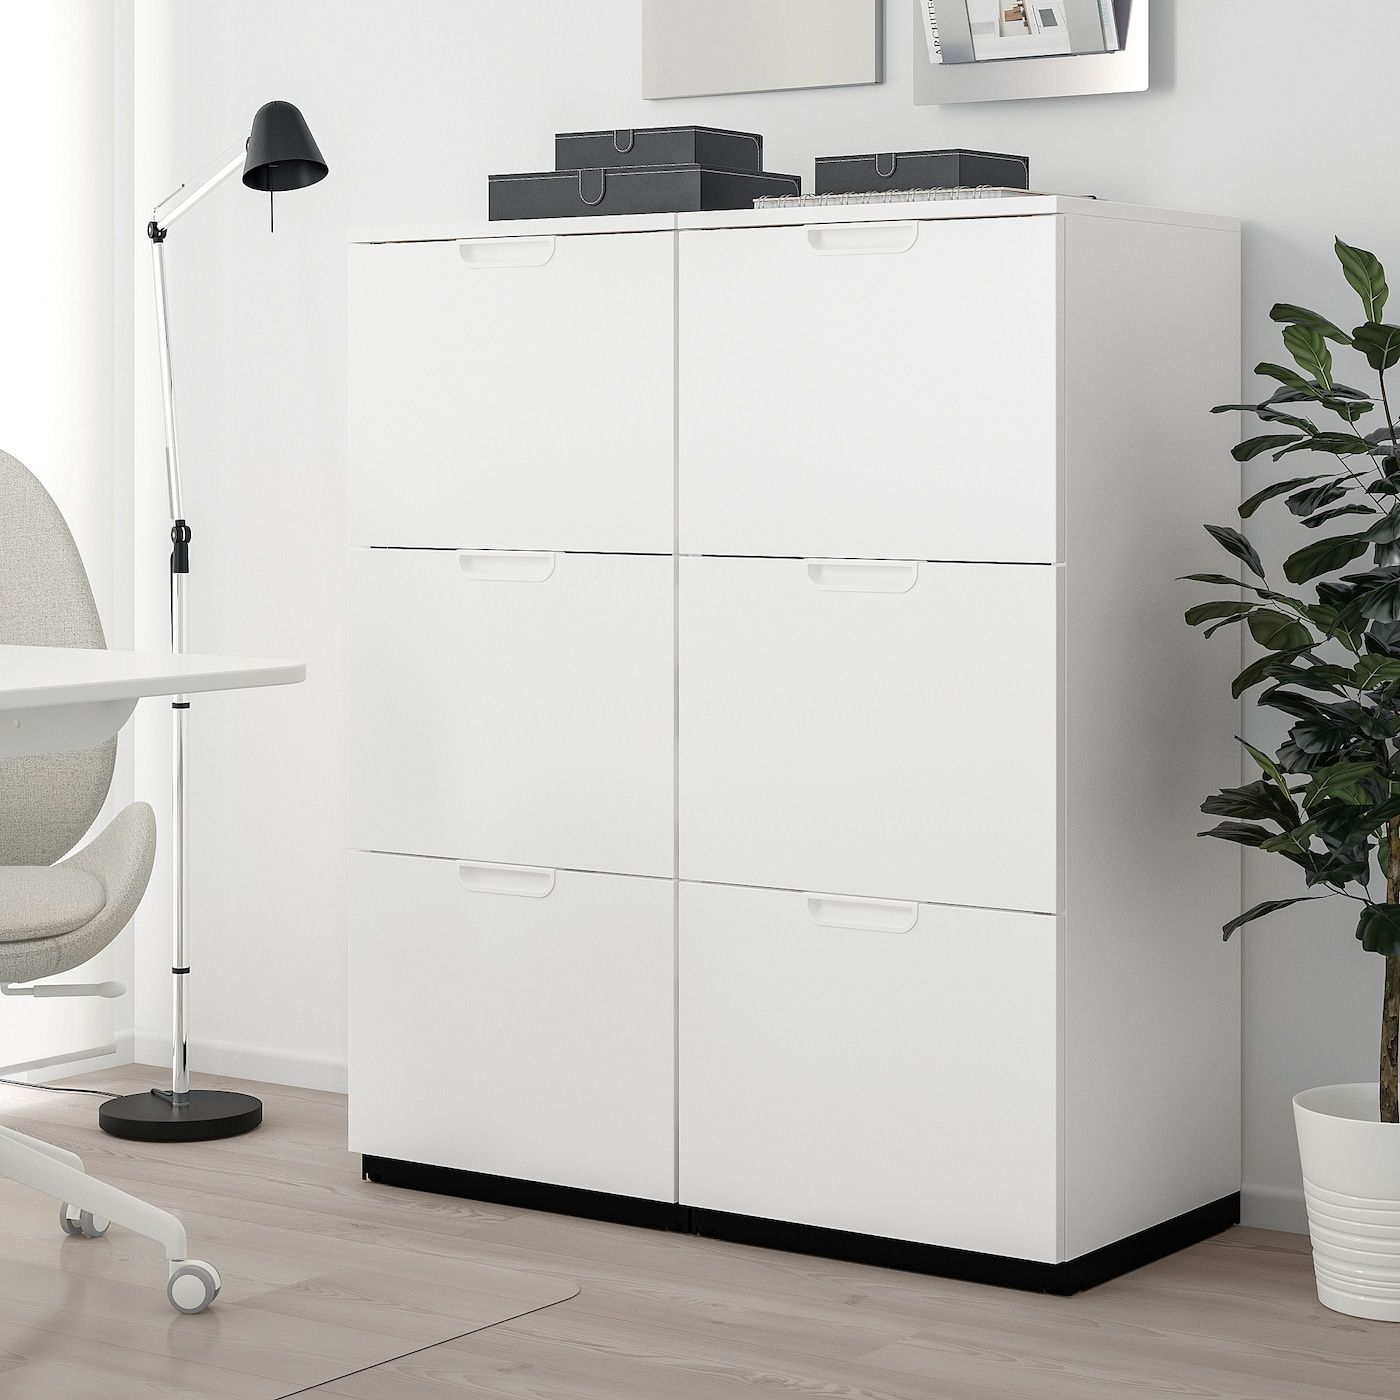 Galant Storage Combination With Filing White 40 1 8x47 1 4